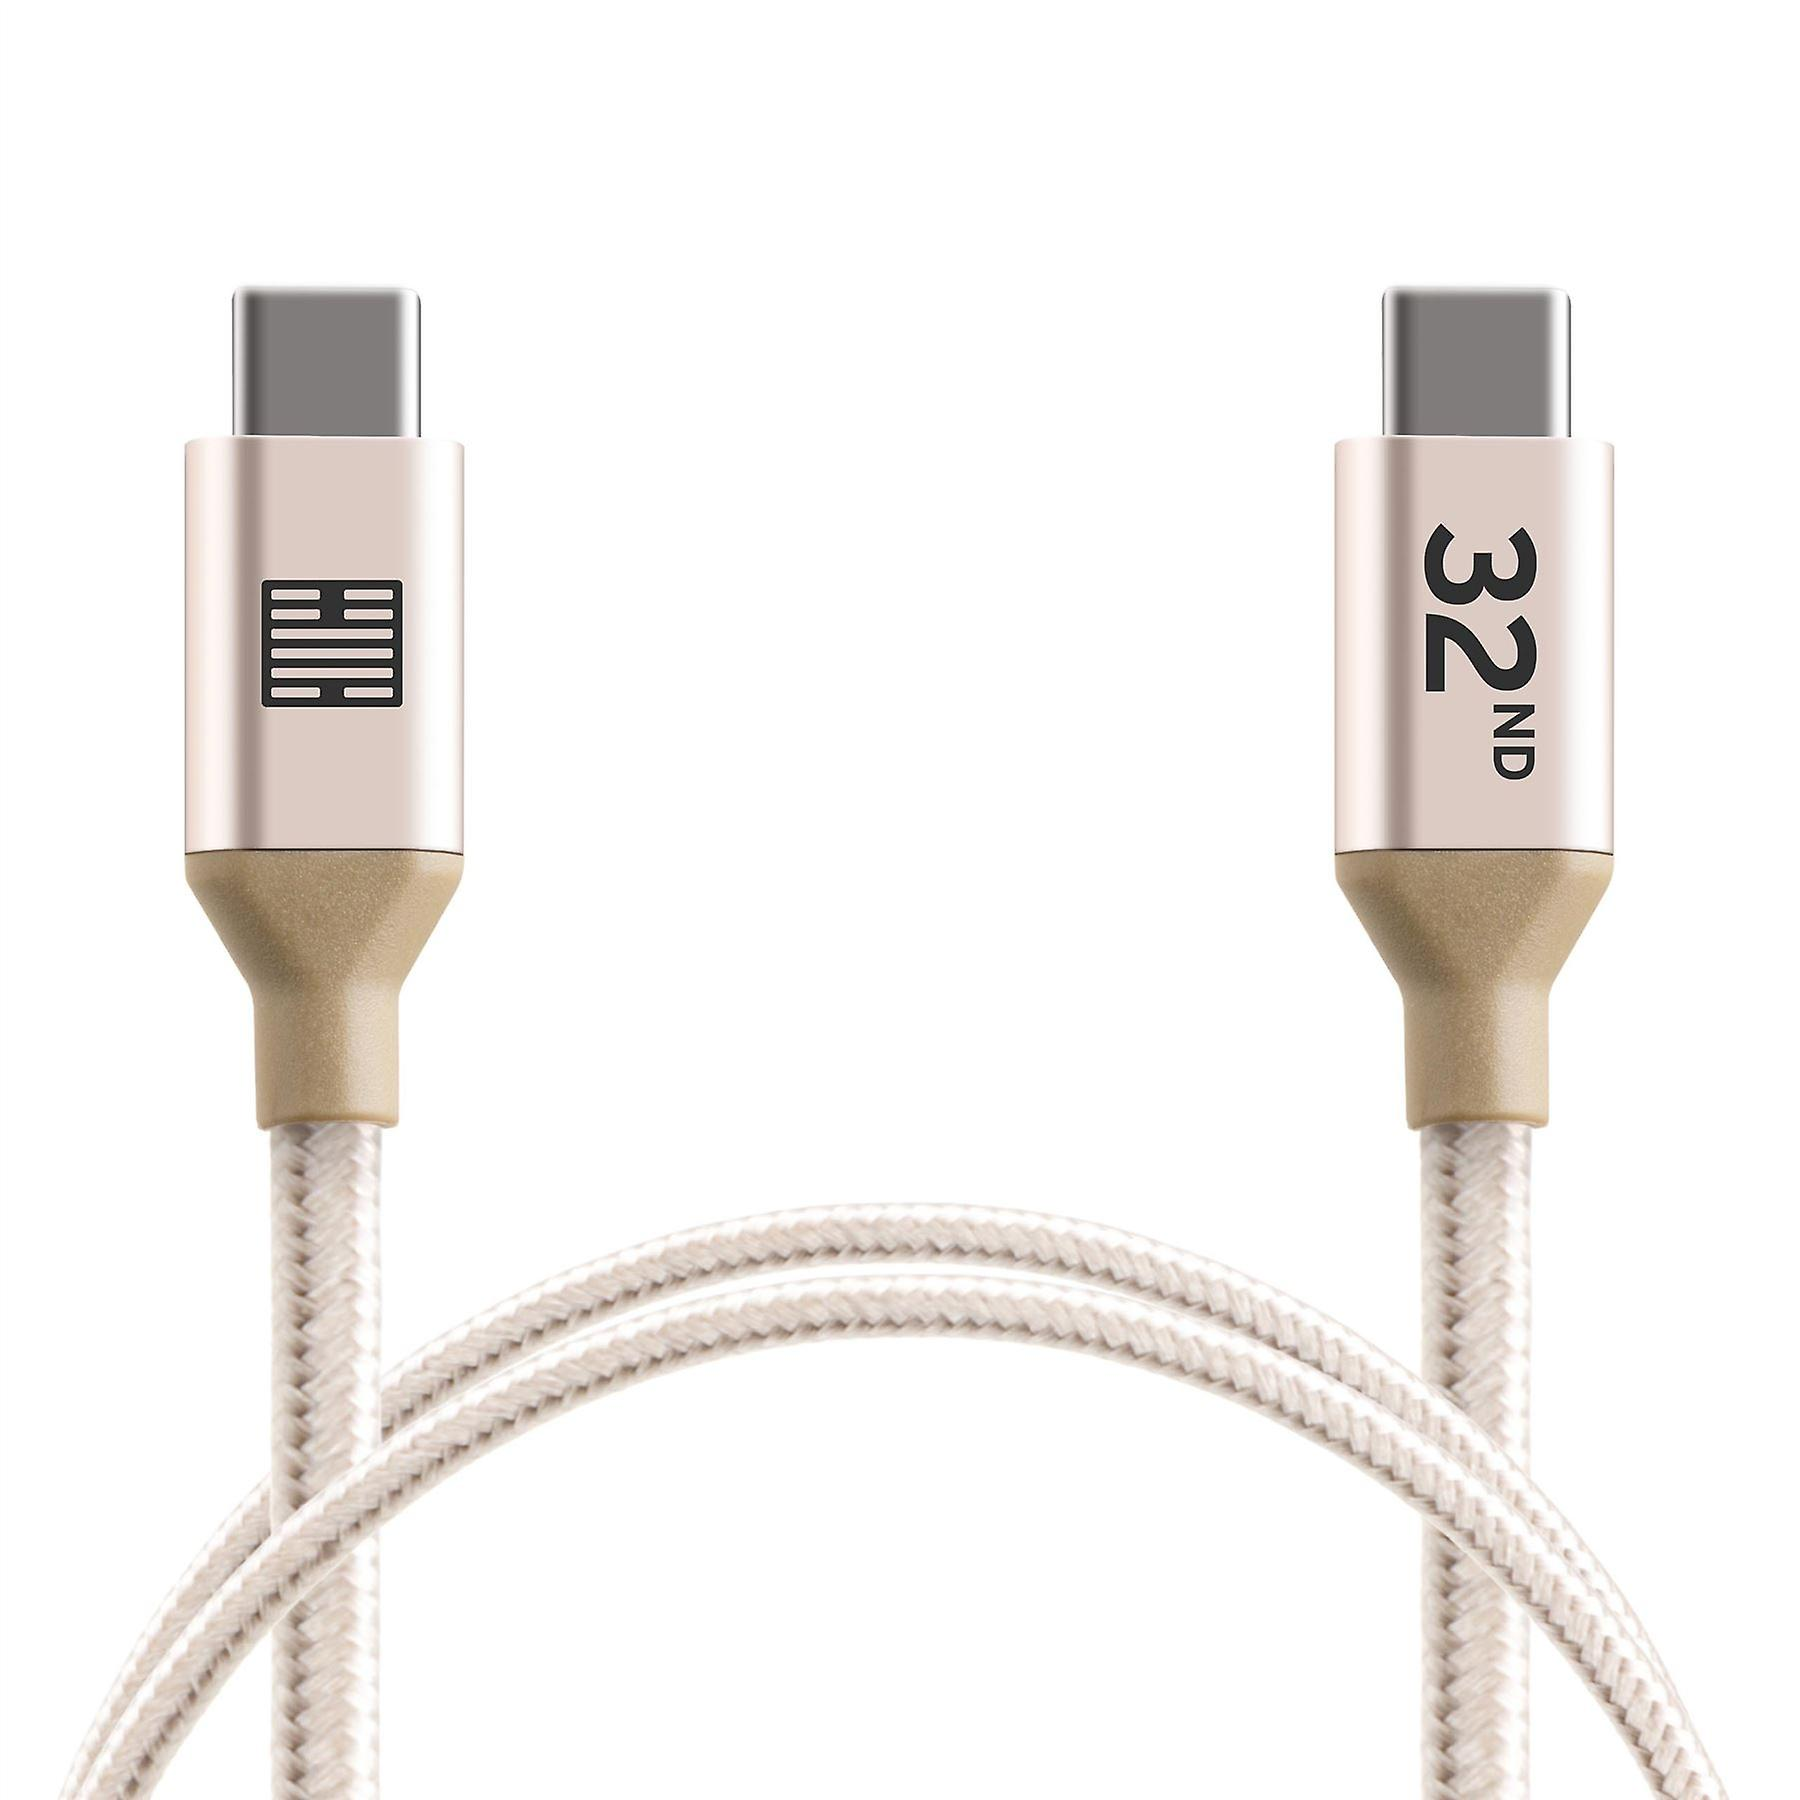 32nd Braided Nylon USB Type-C  to USB Type-C cable 1m - Gold